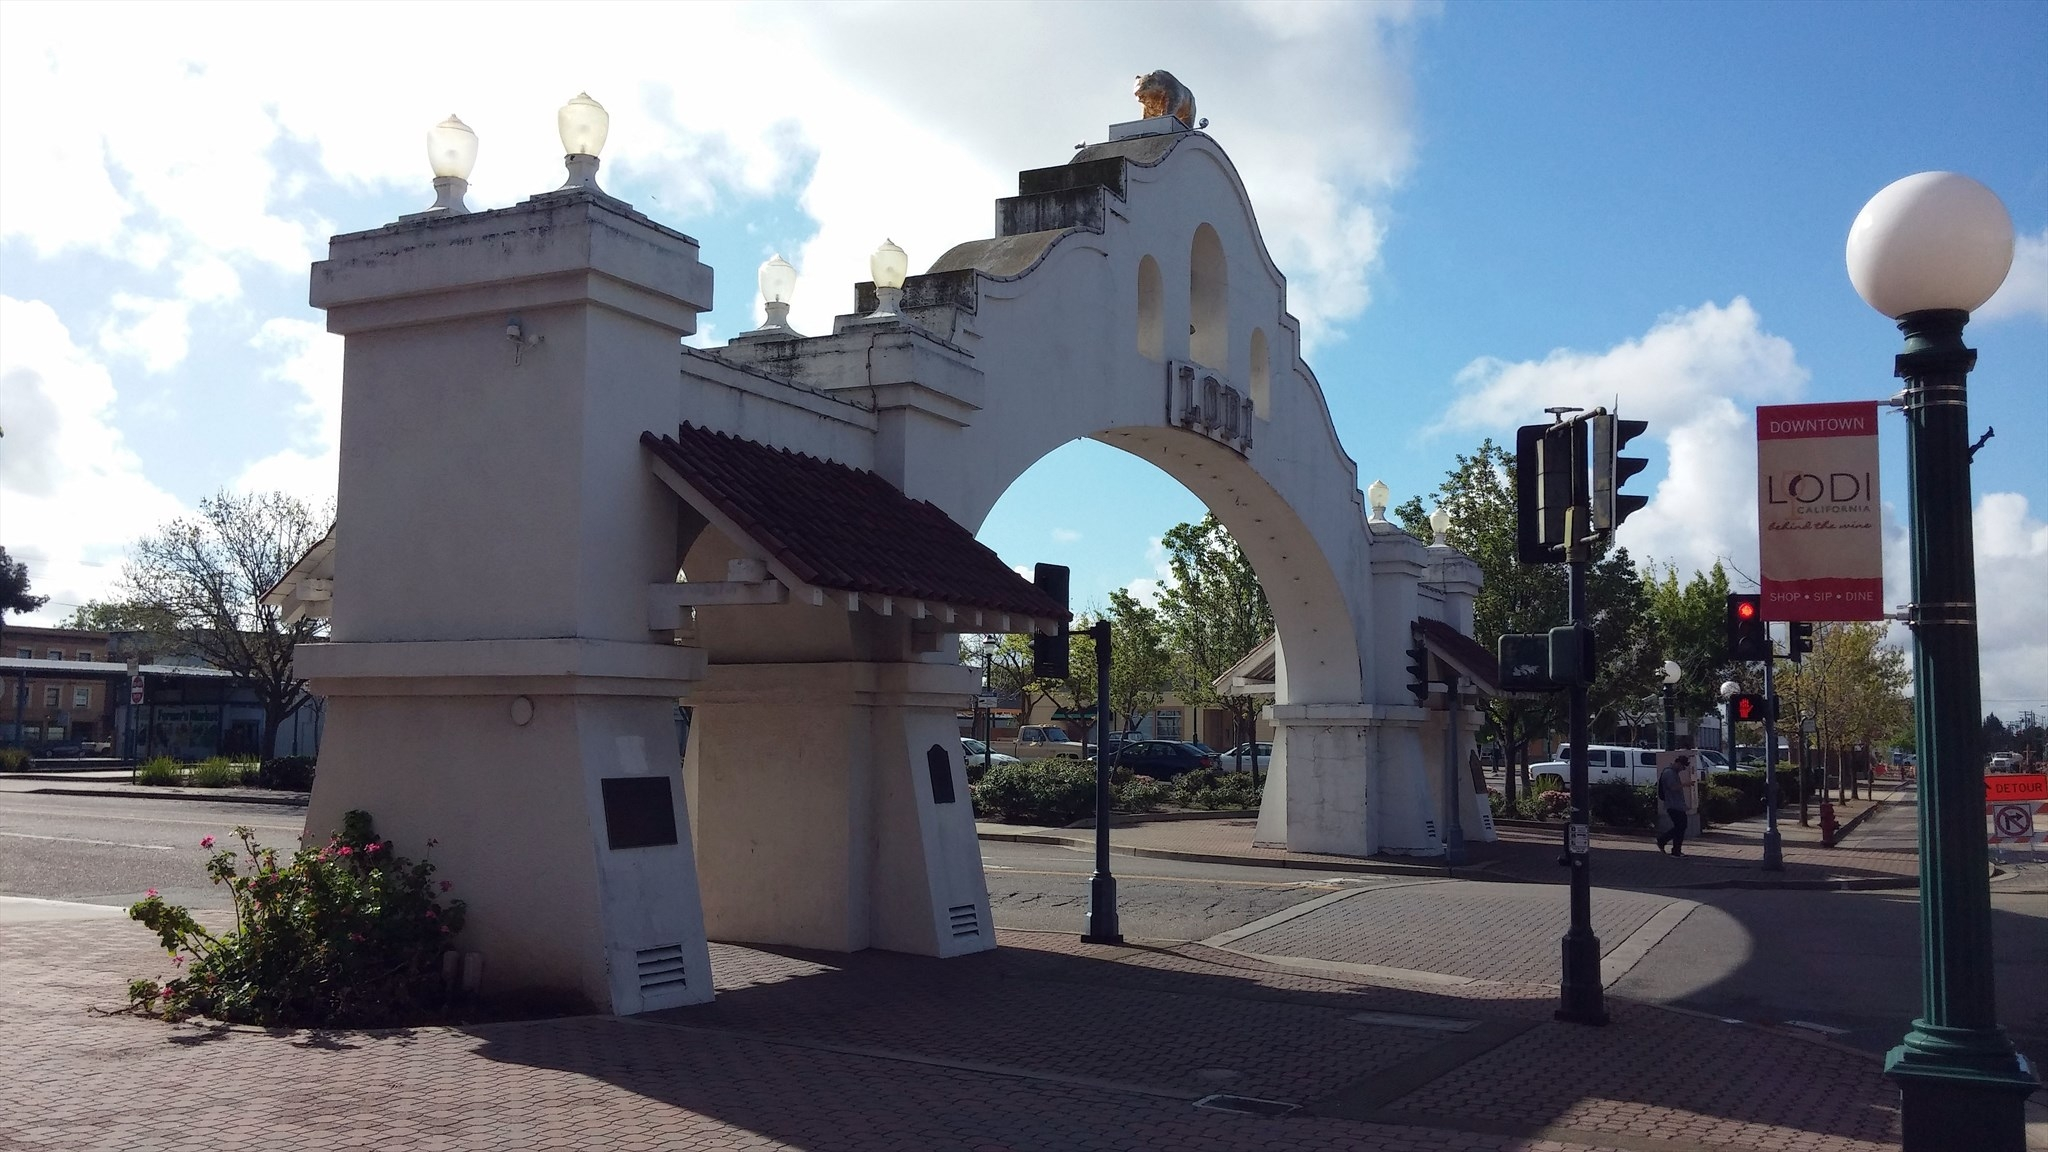 Lodi welcome arch